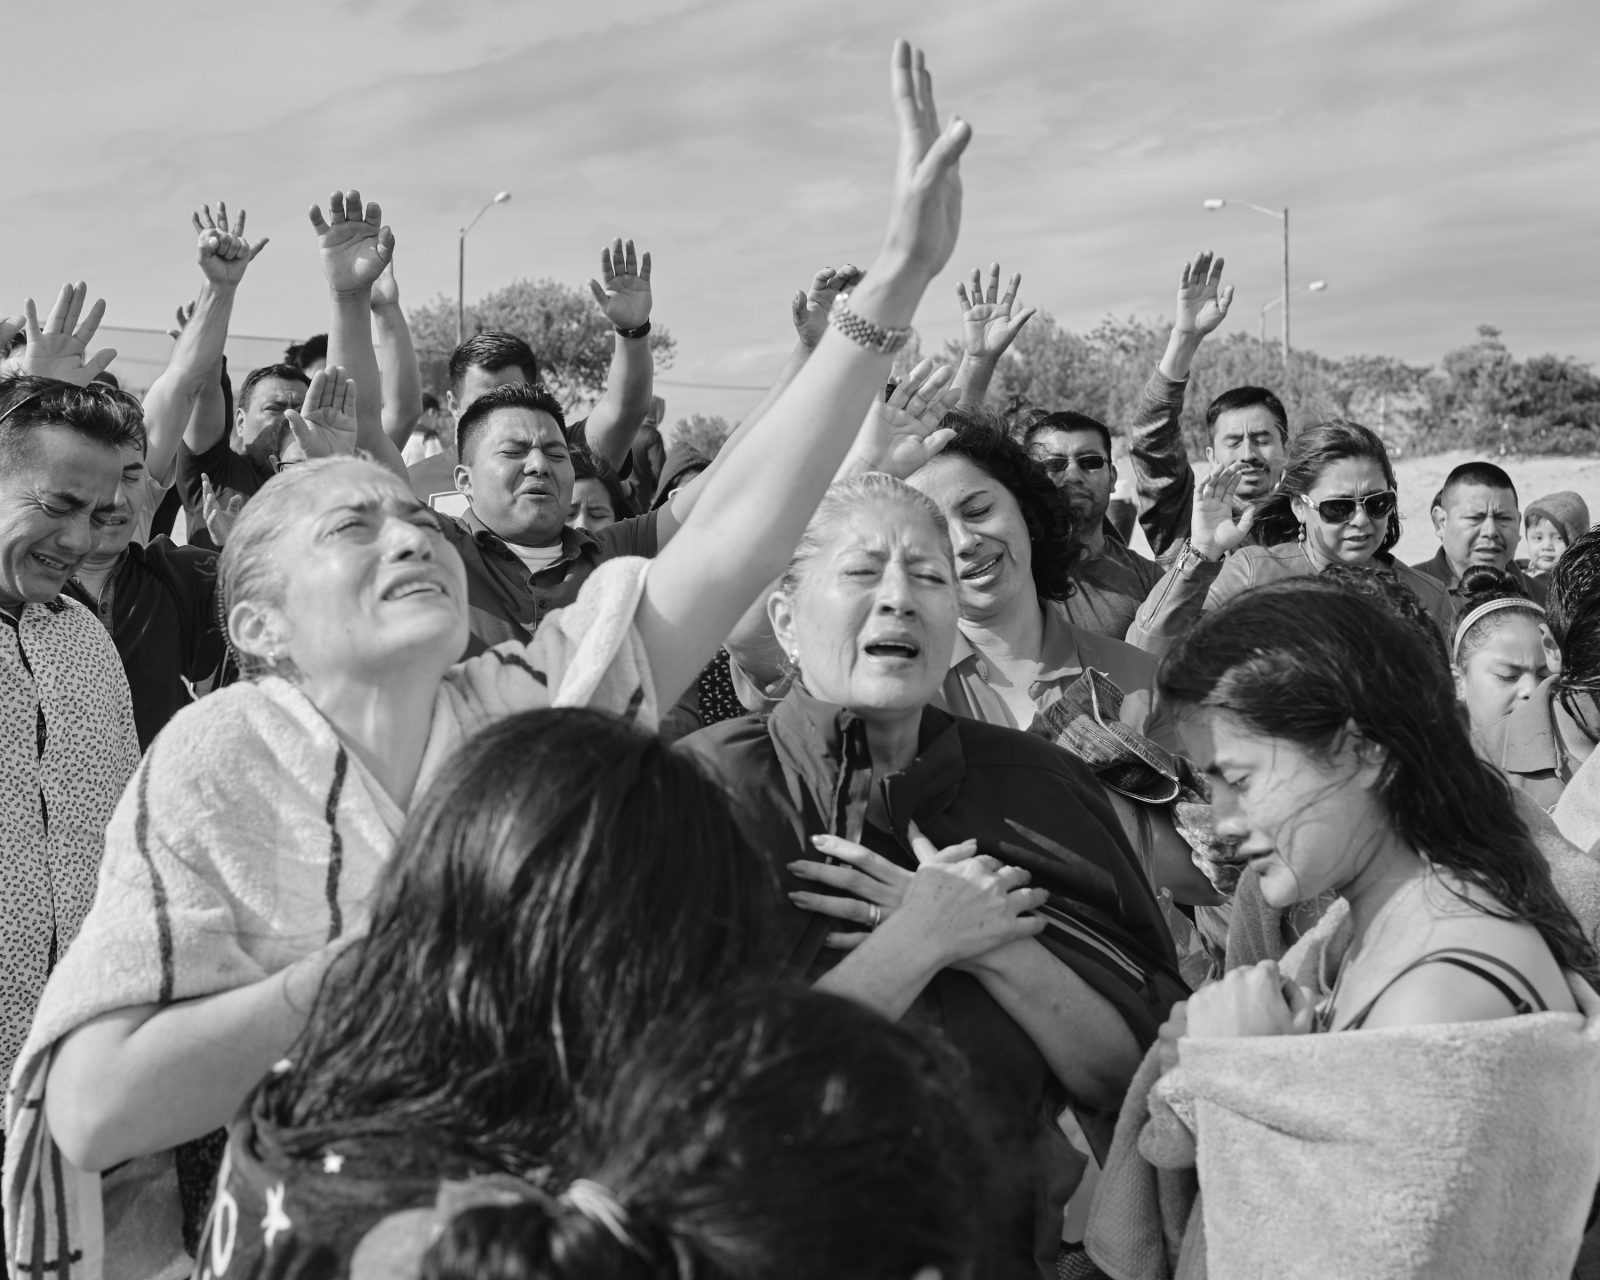 A group of evangelical prays to the heaven in celebration of baptism in a Sunday morning, over the Reynolds Channel in Far Rockaway.